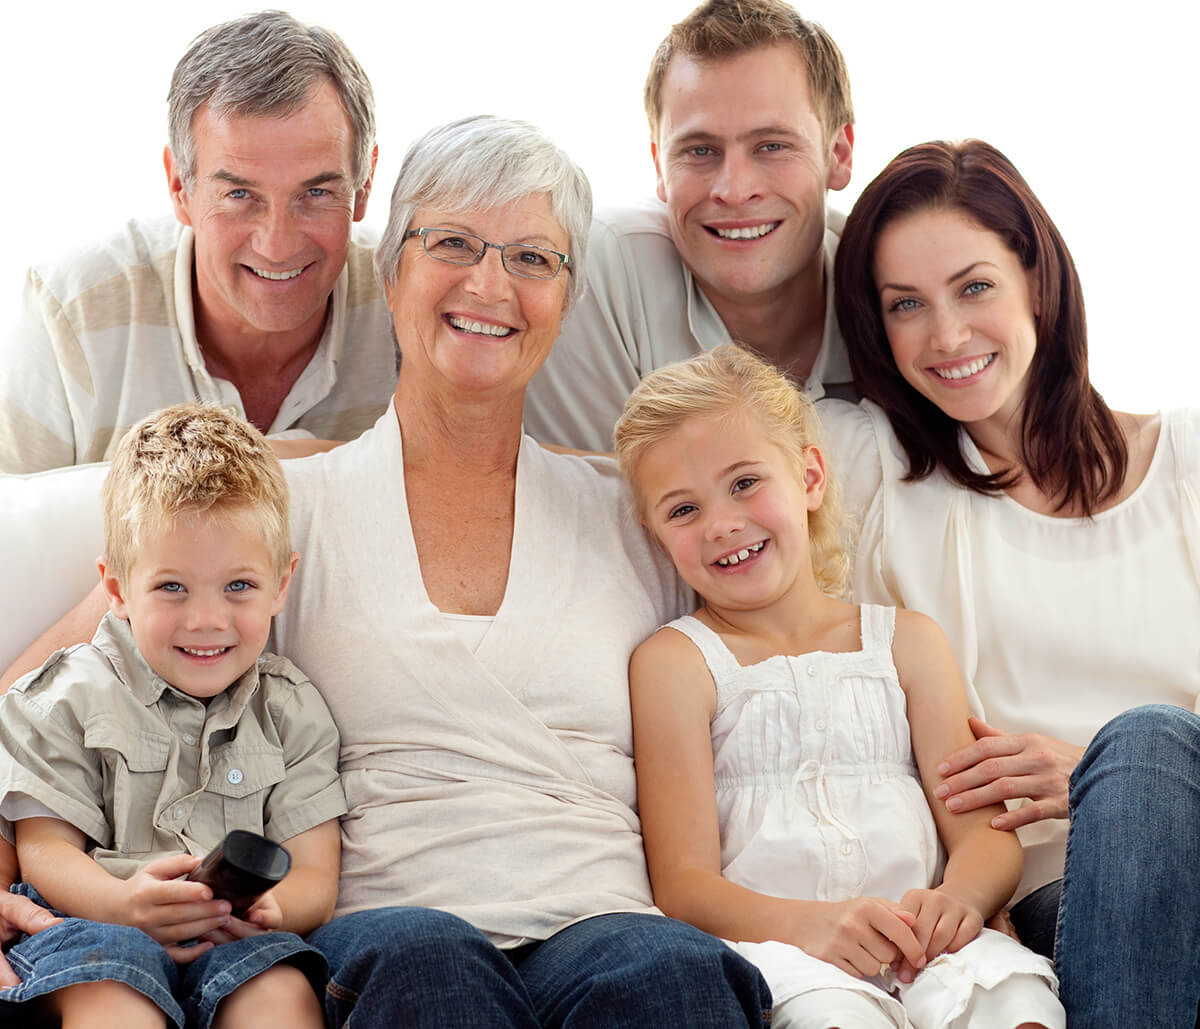 Dentist Provides Dentistry For The Whole Family in Scottsdale AZ Area